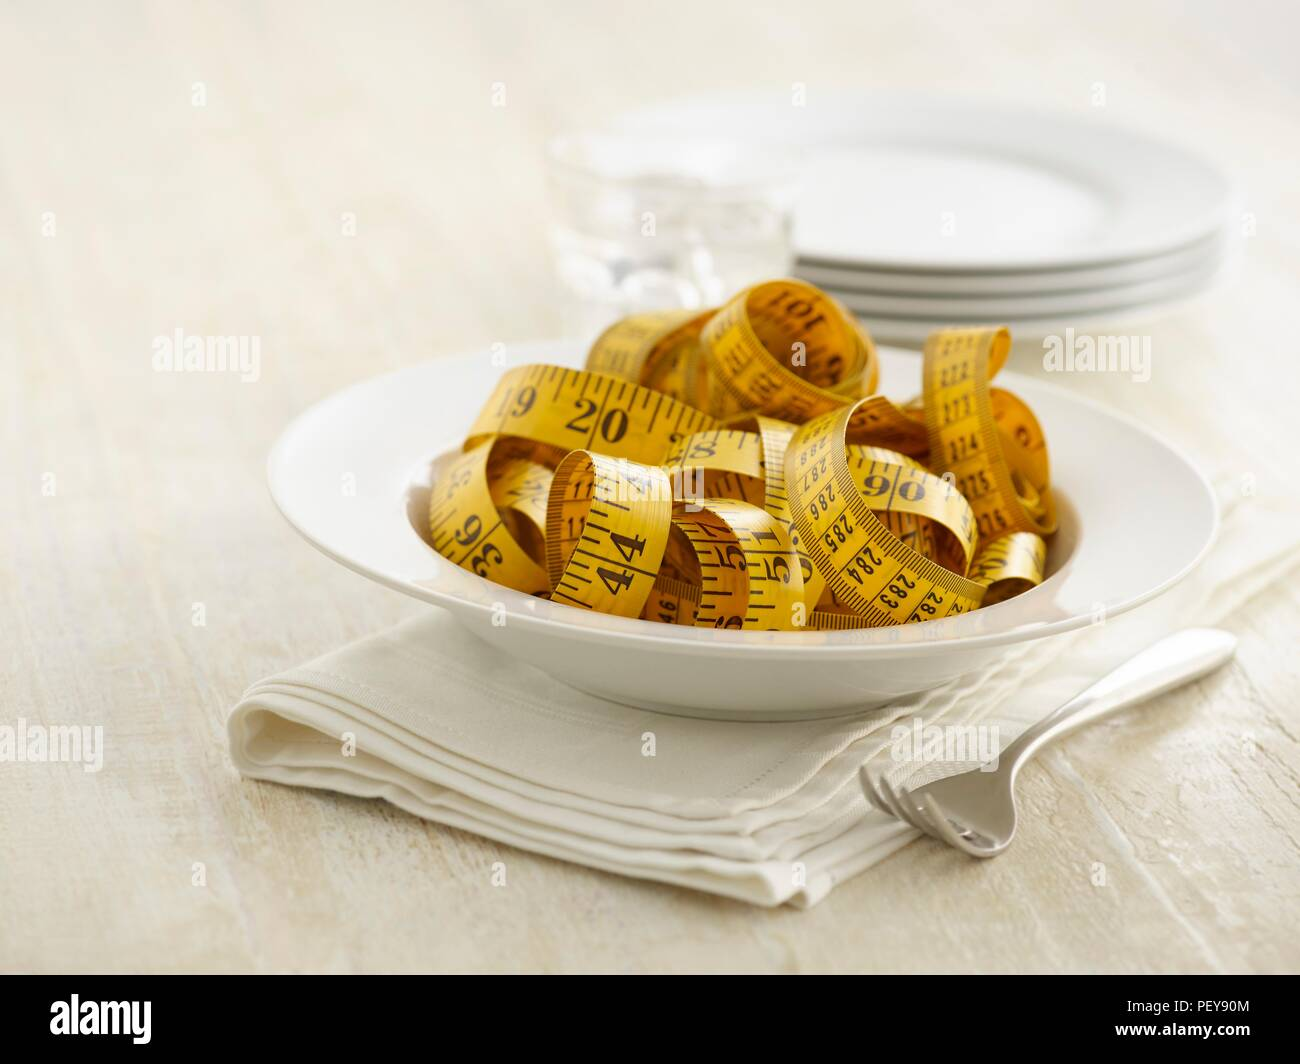 Pasta bowl with tape measure. - Stock Image